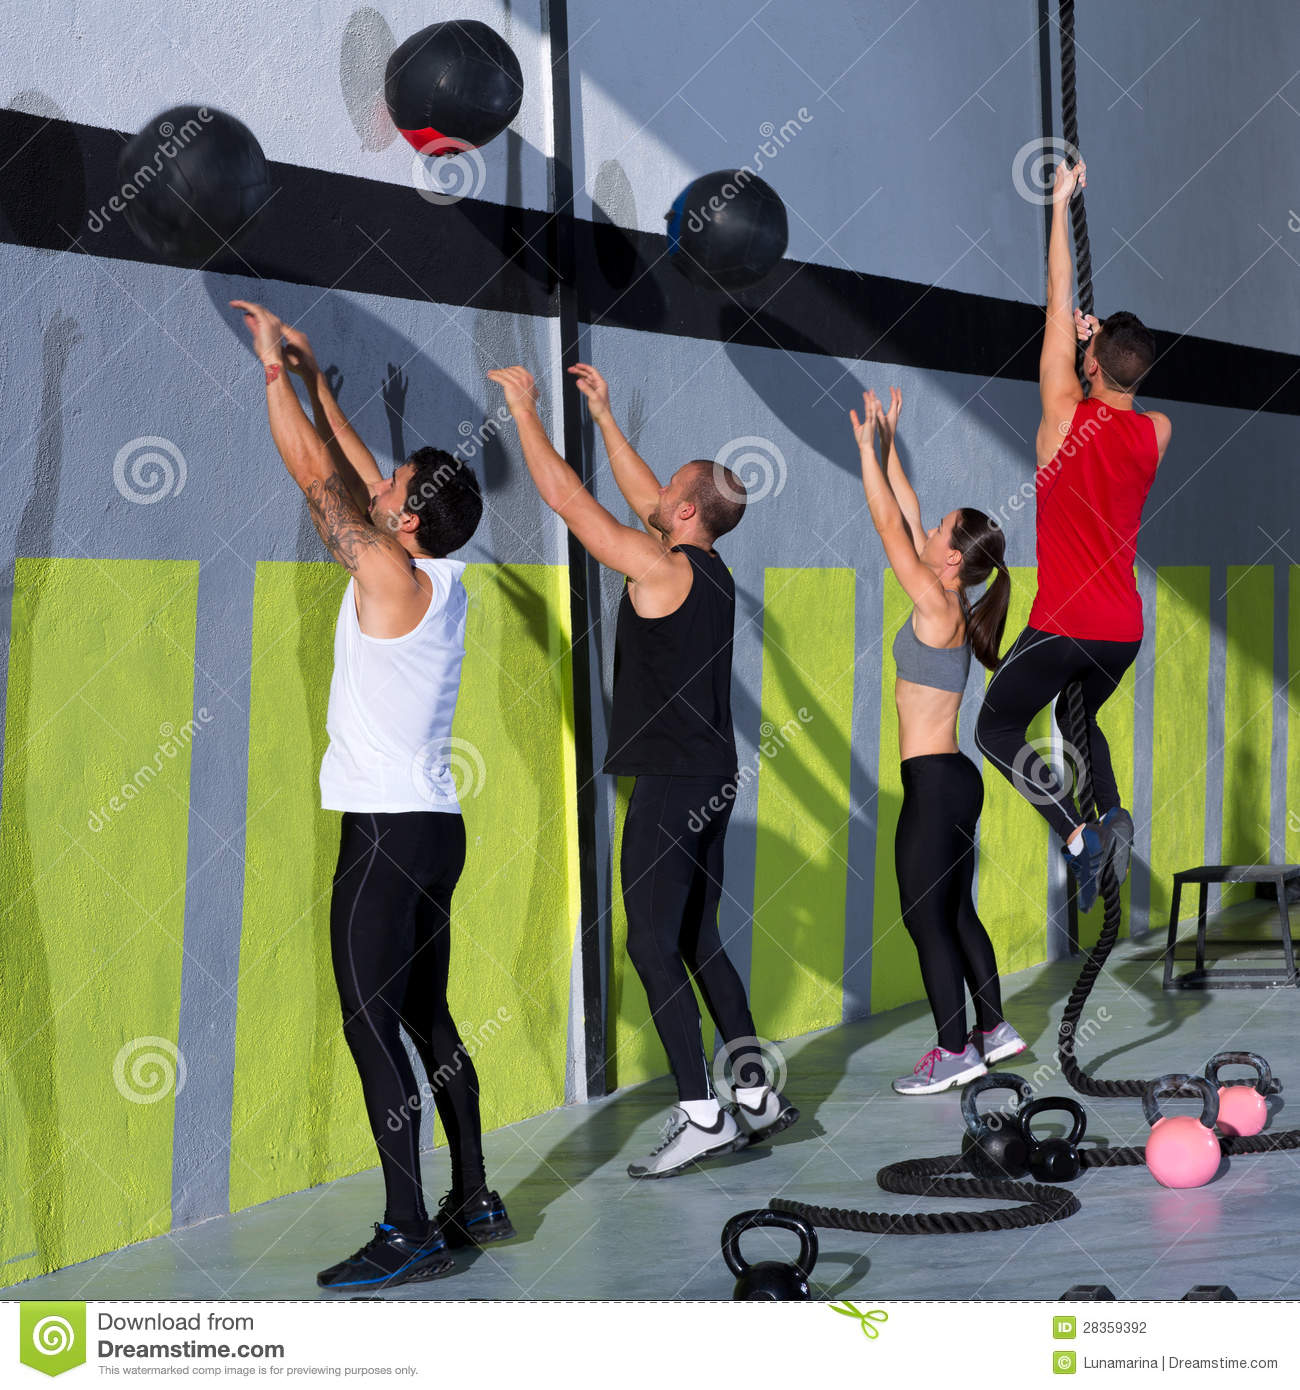 Workout Photography: Crossfit Workout People Group With Wall Balls And Rope